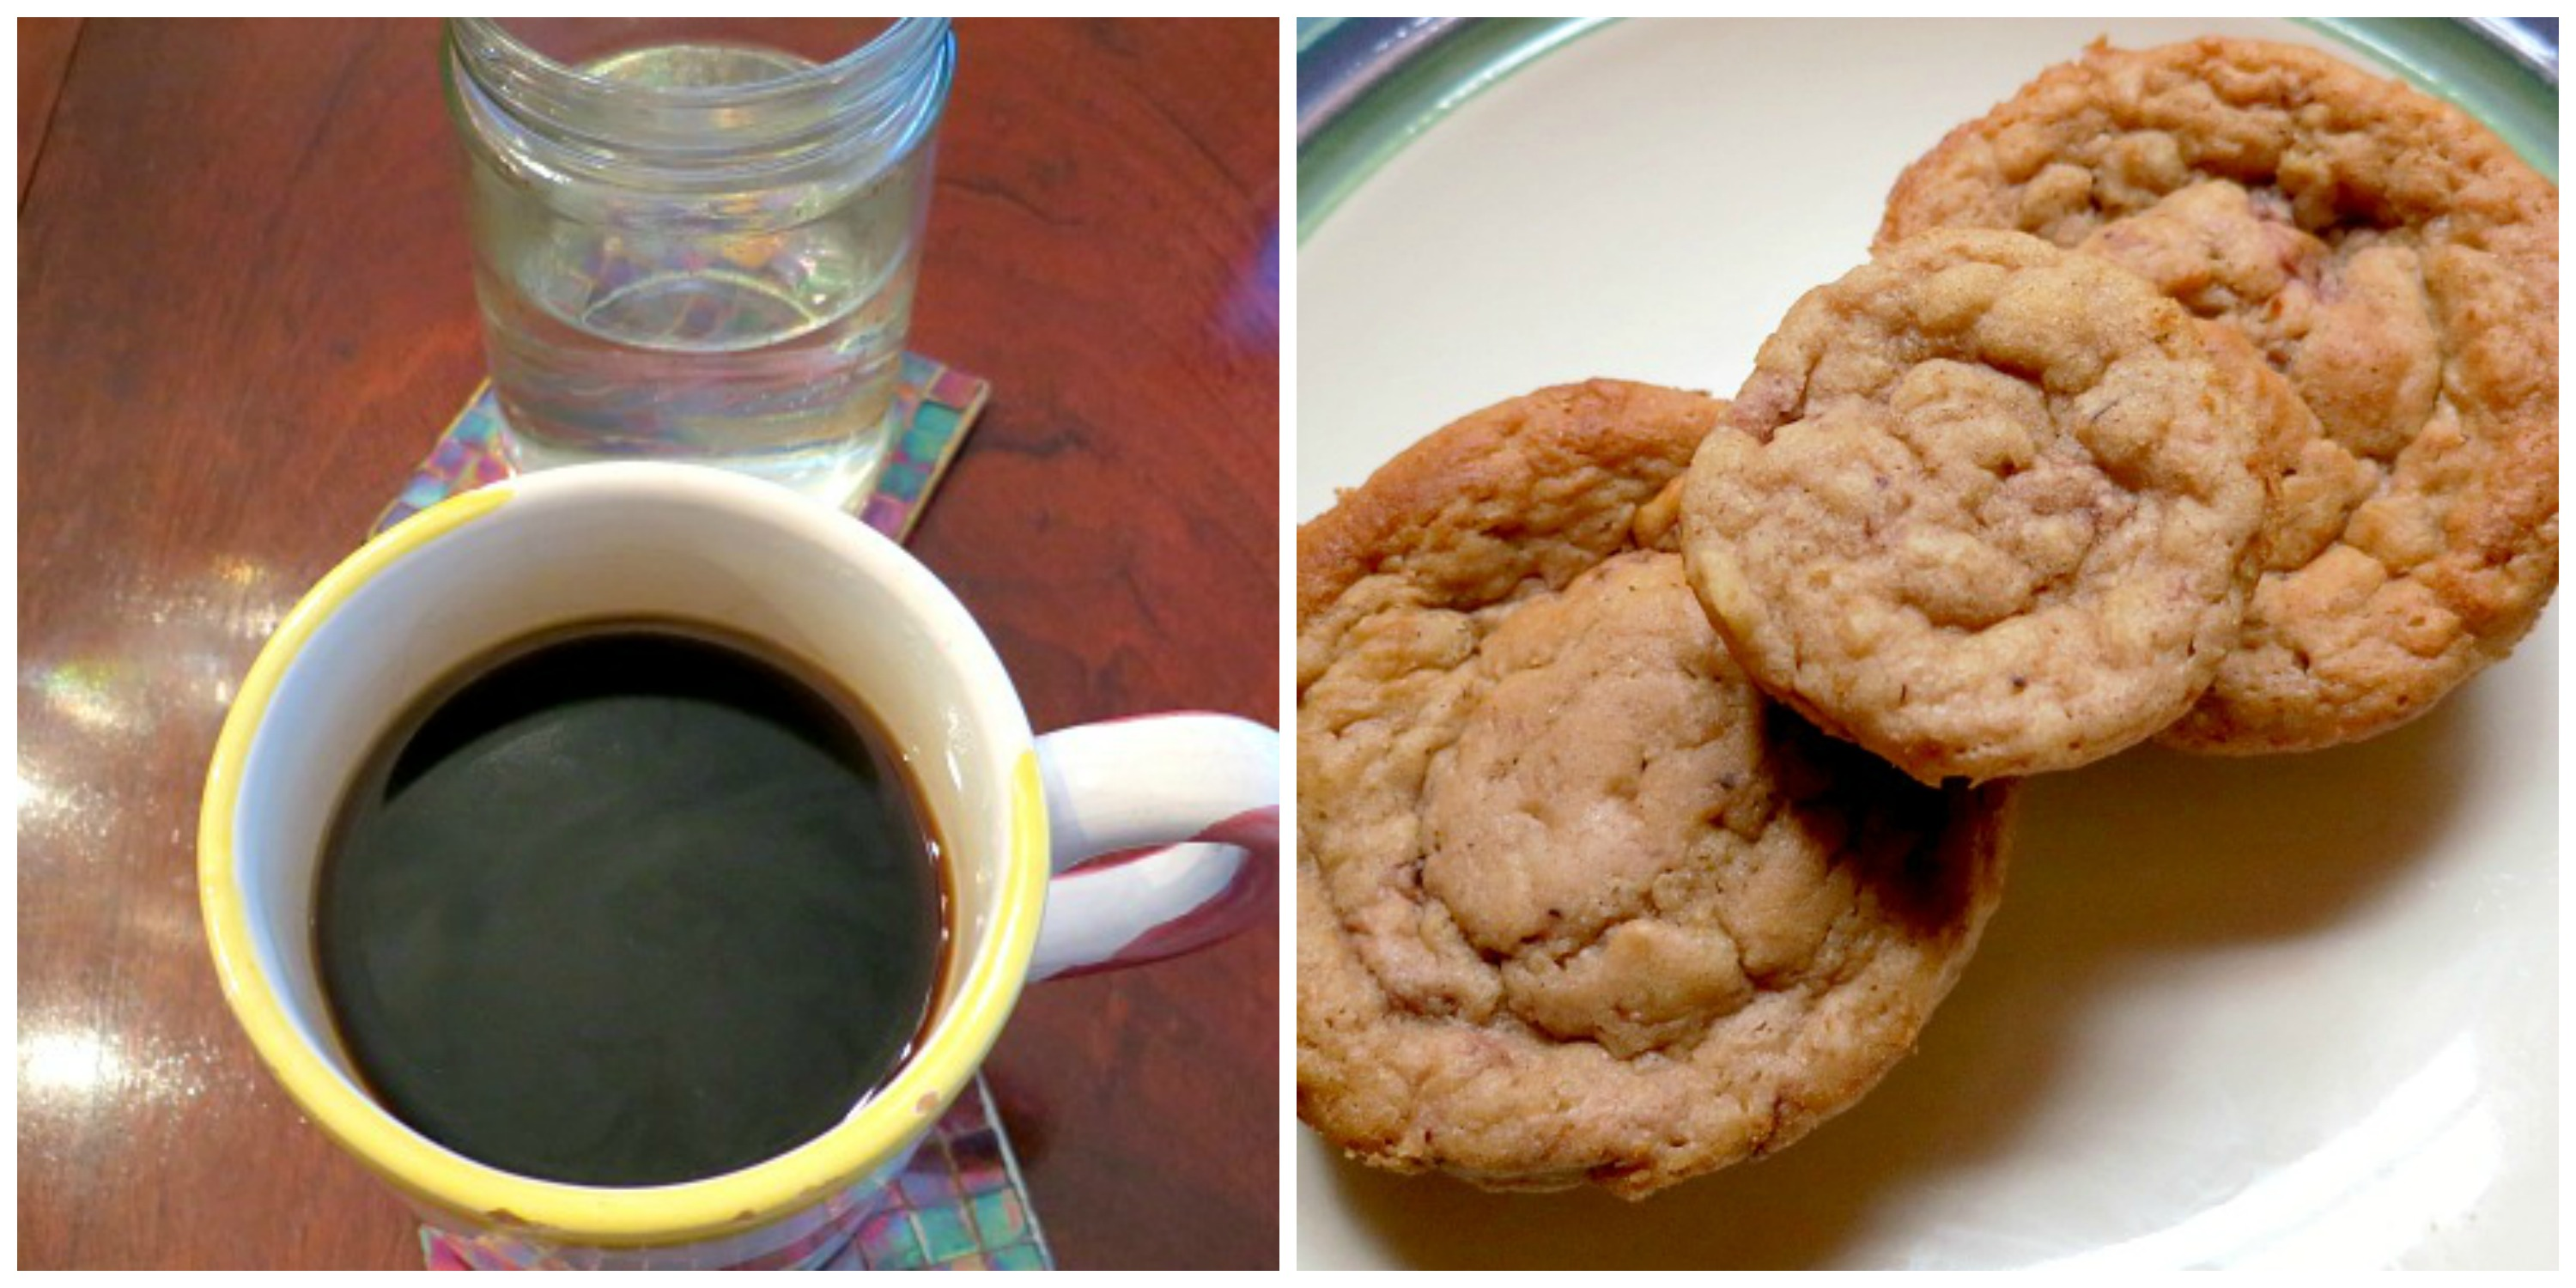 Coffee and Muffins Collage